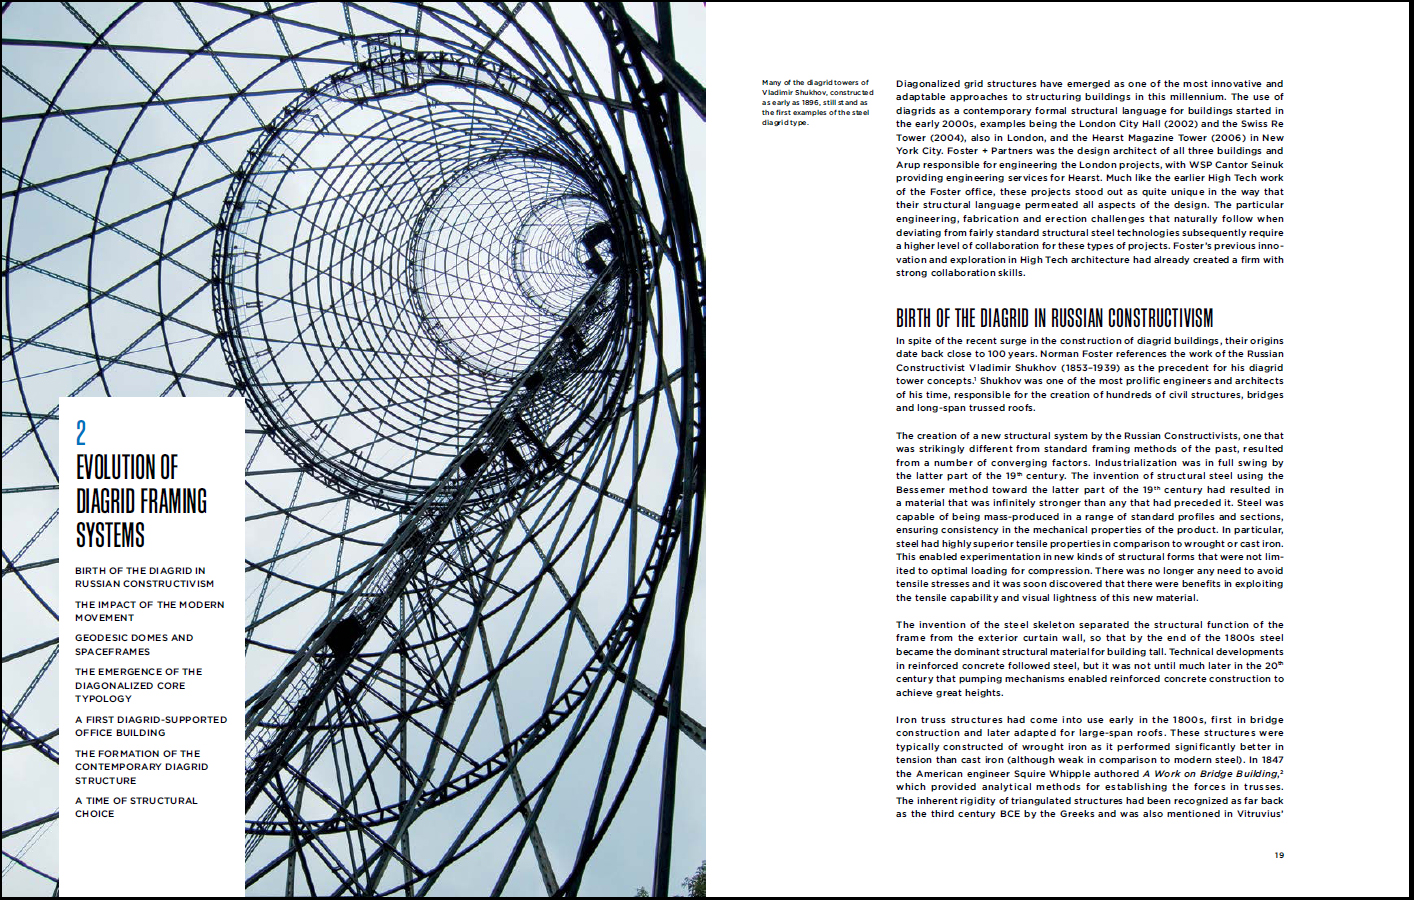 Diagrid Structures: Systems, Connections, Details by Terri Meyer Boake